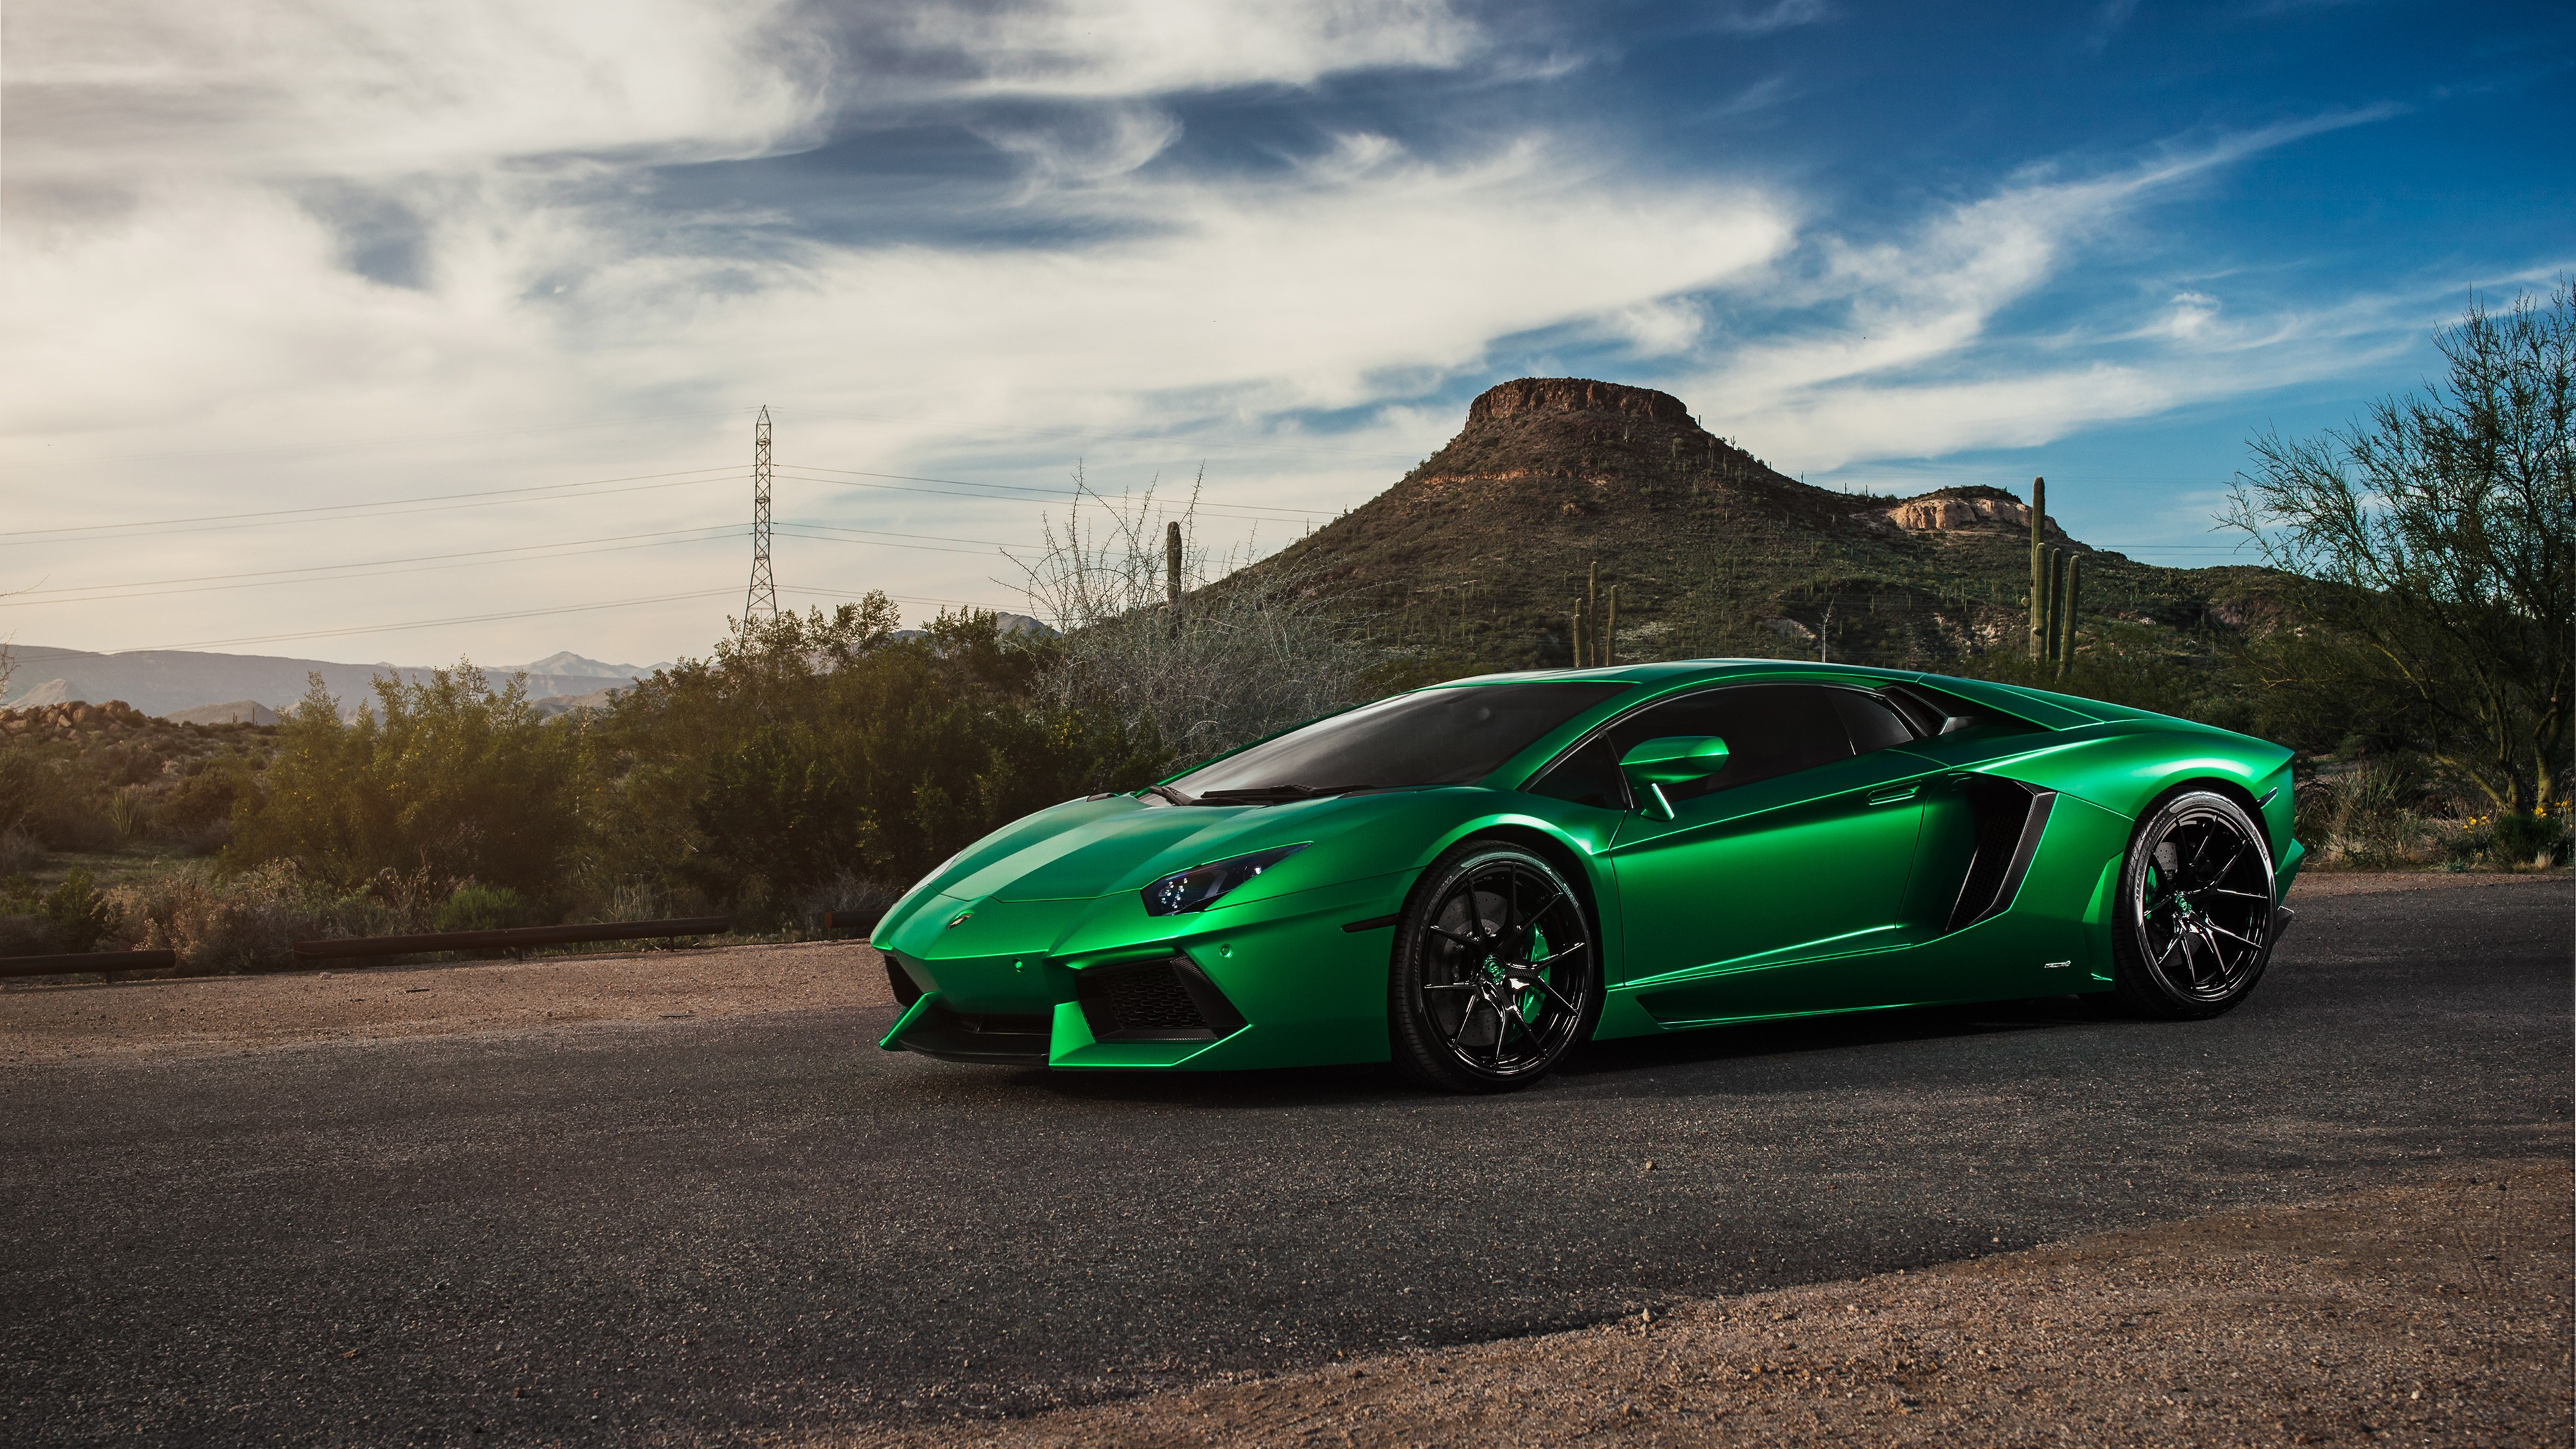 Lamborghini aventador green 4k hd cars 4k wallpapers - Wallpaper hd 4k car ...